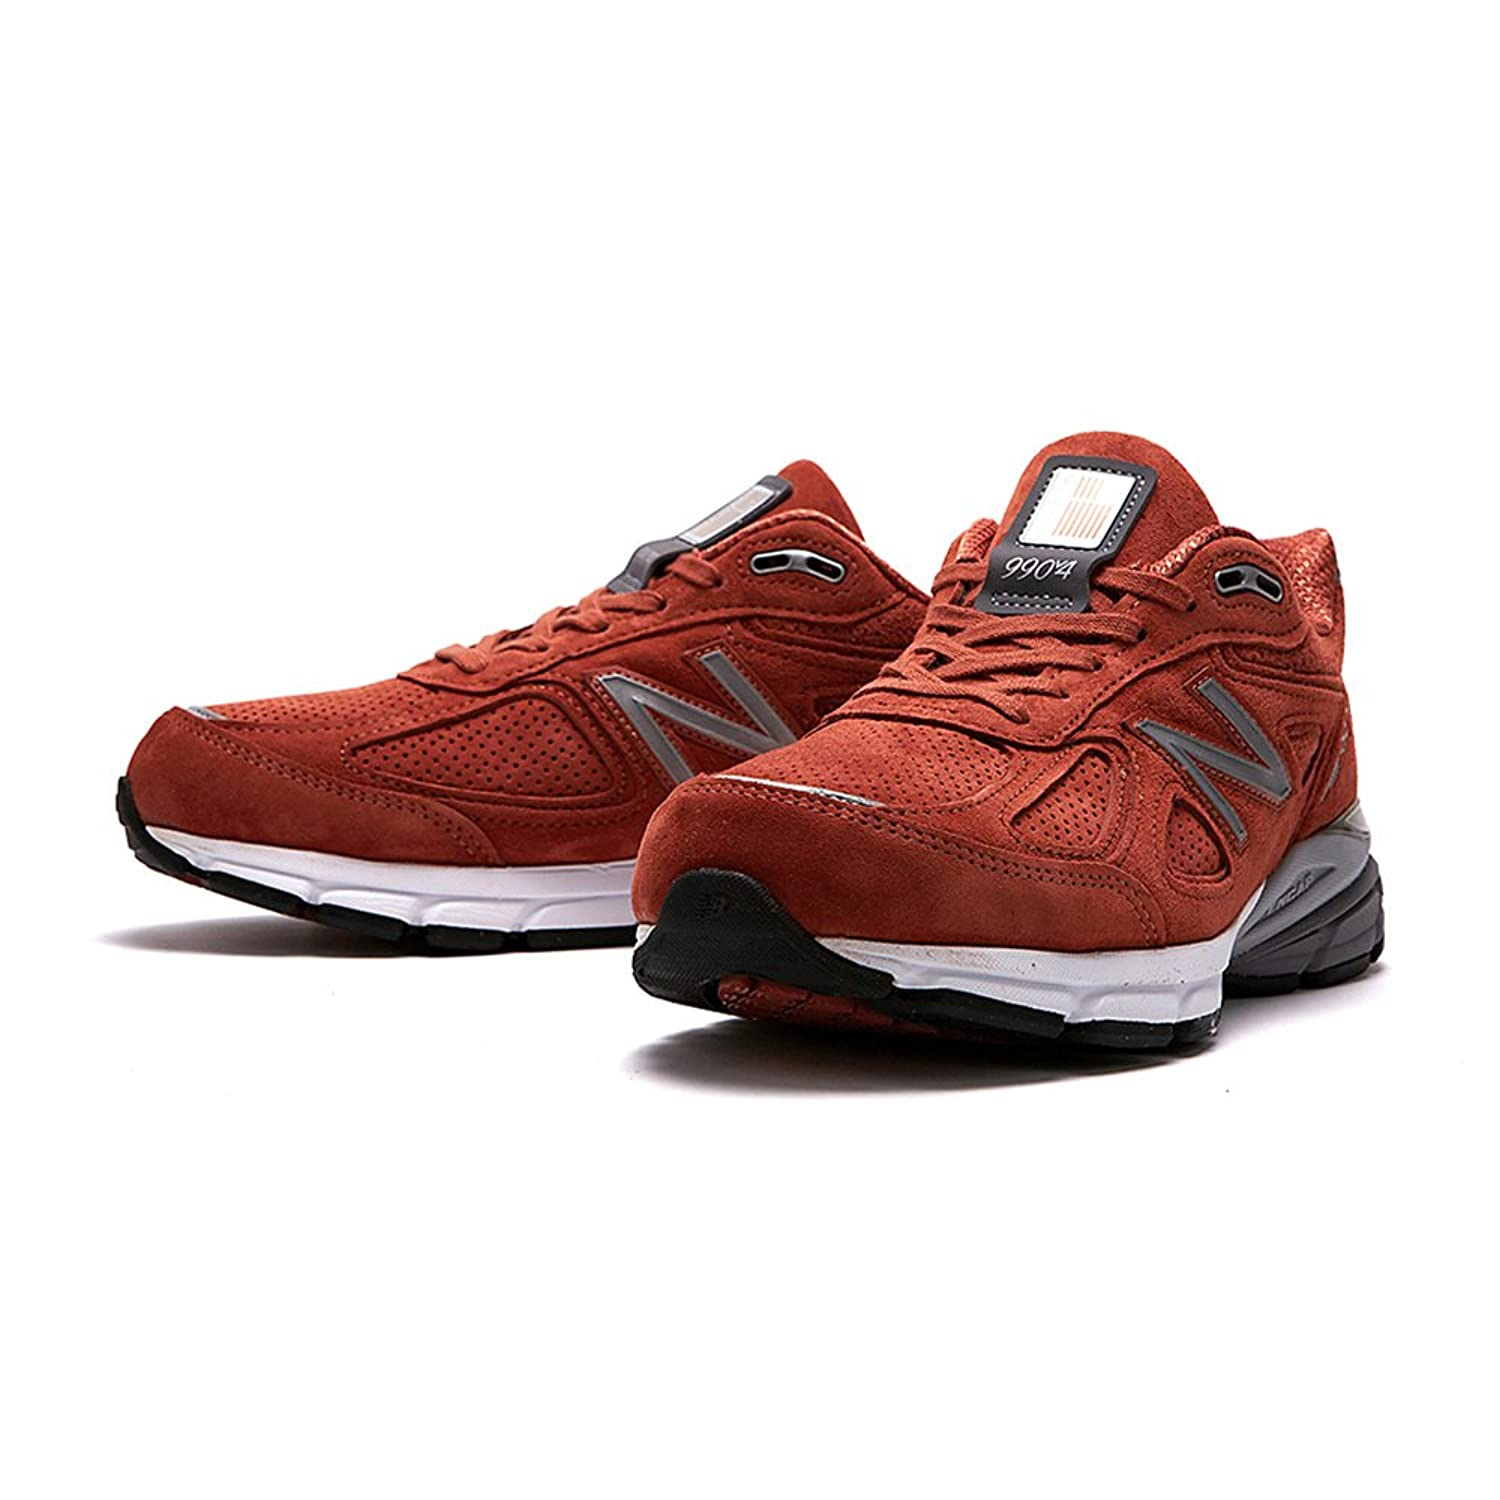 [ニューバランス NewBalance] new balance M990JP4 ORANGE NBPZ8S224G 13isa3 [並行輸入品] B07BFCYWJB